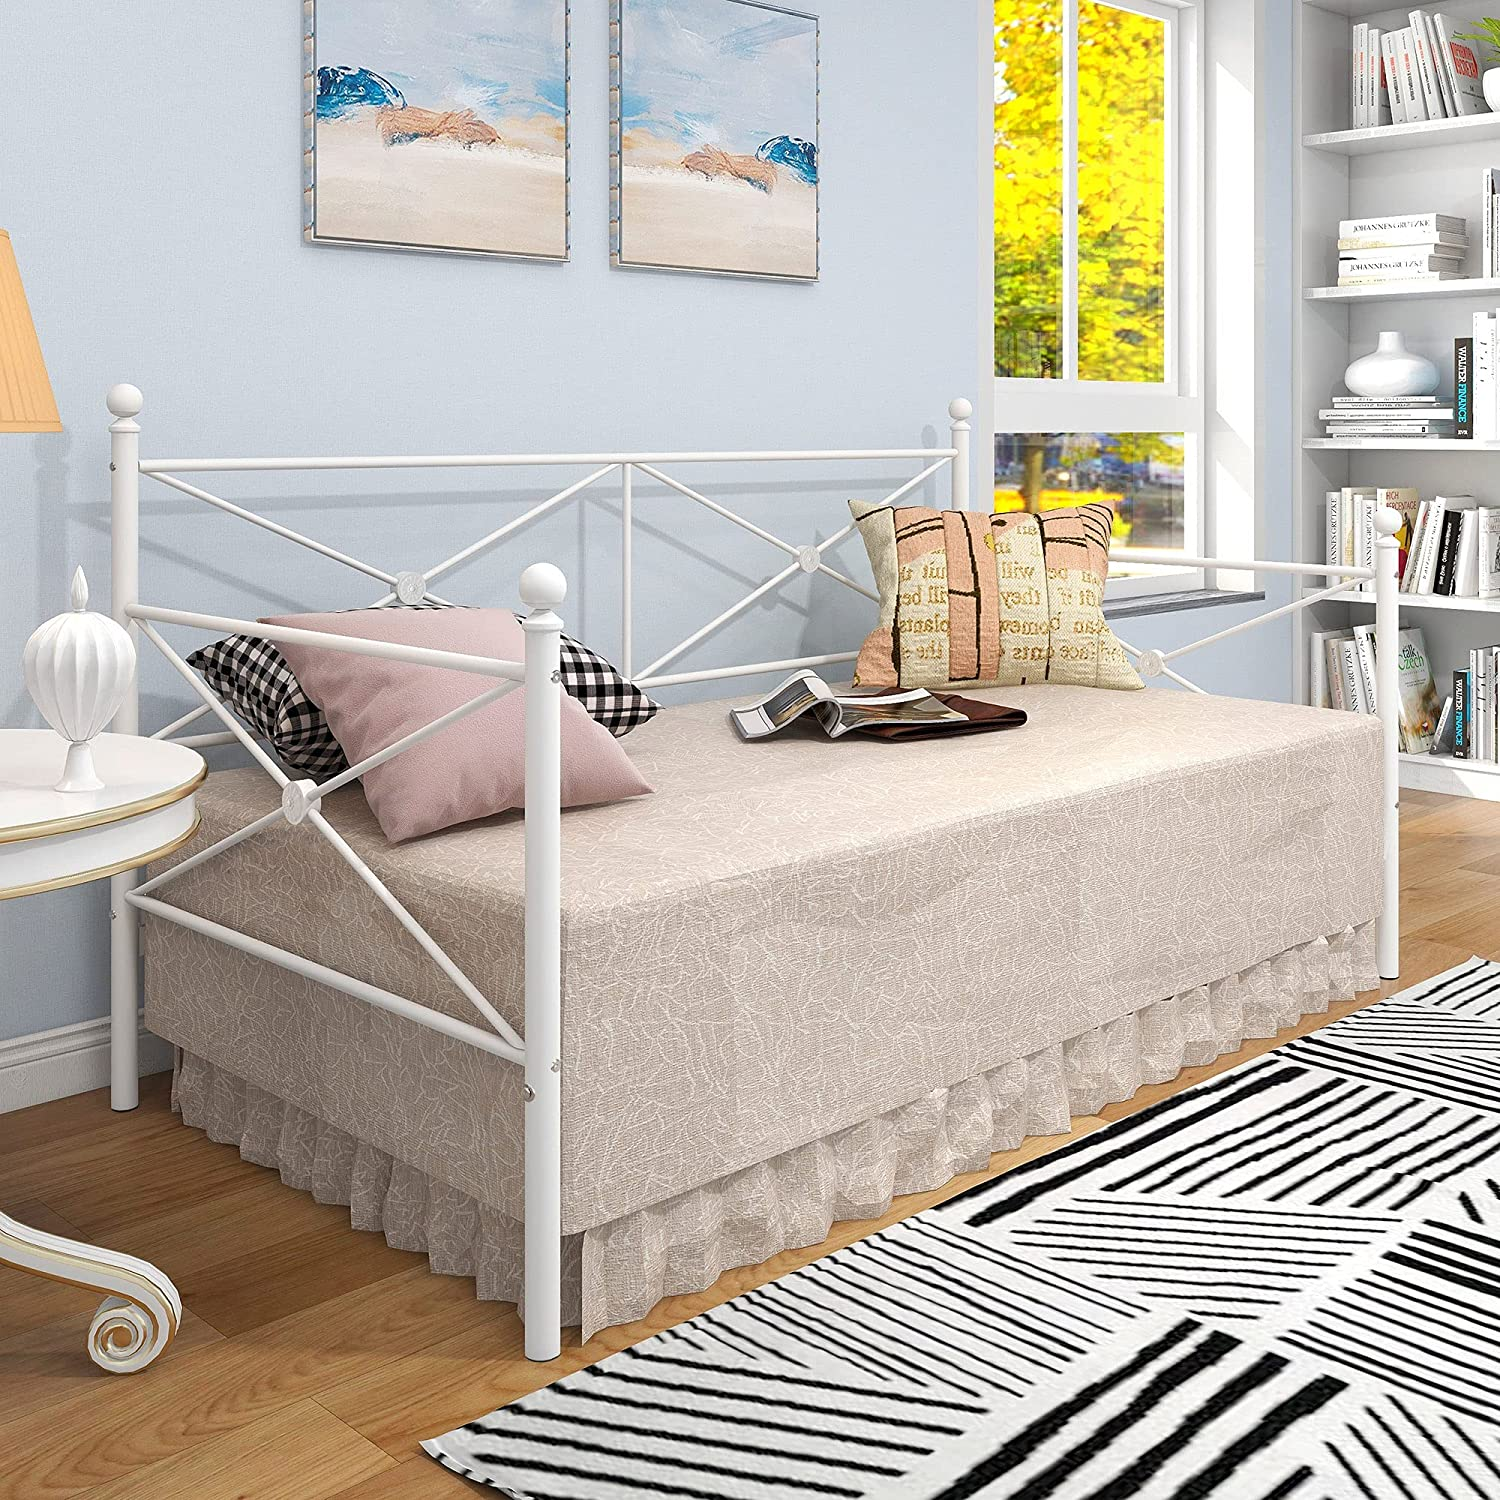 JURMERRY Daybed Twin Size Metal Frame,Multi-Functional Furniture,White